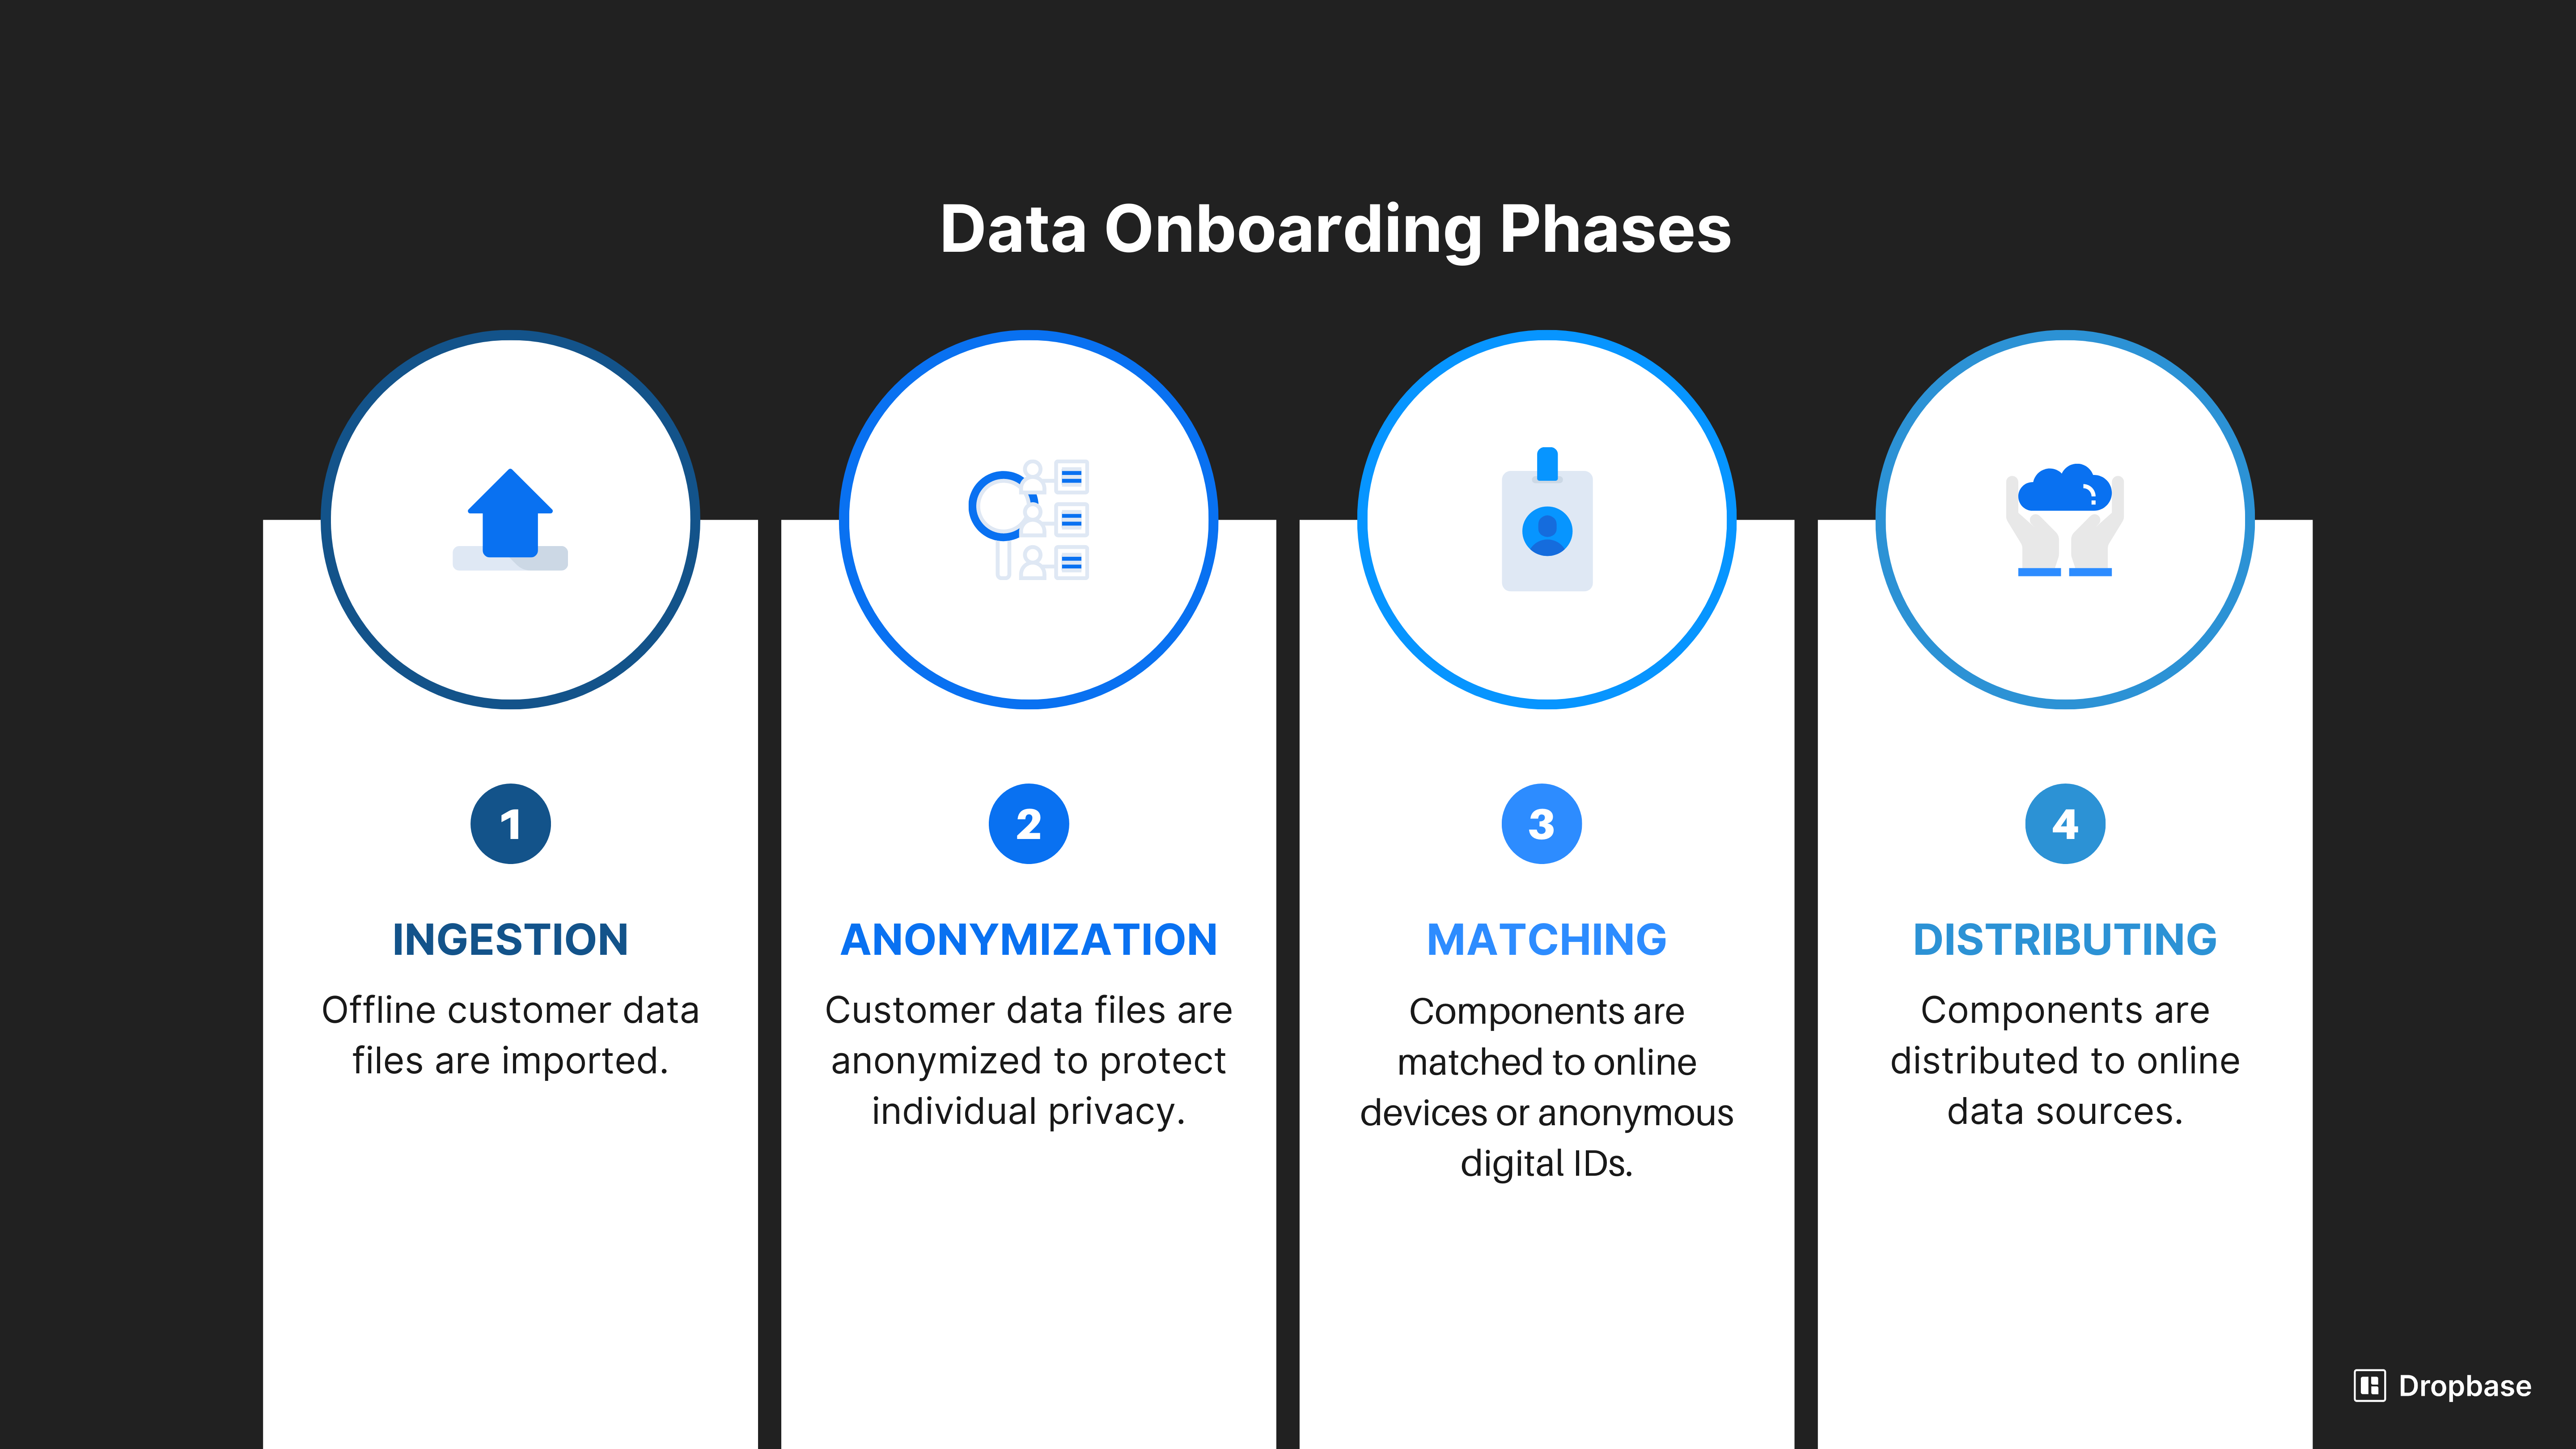 Data onboarding phases